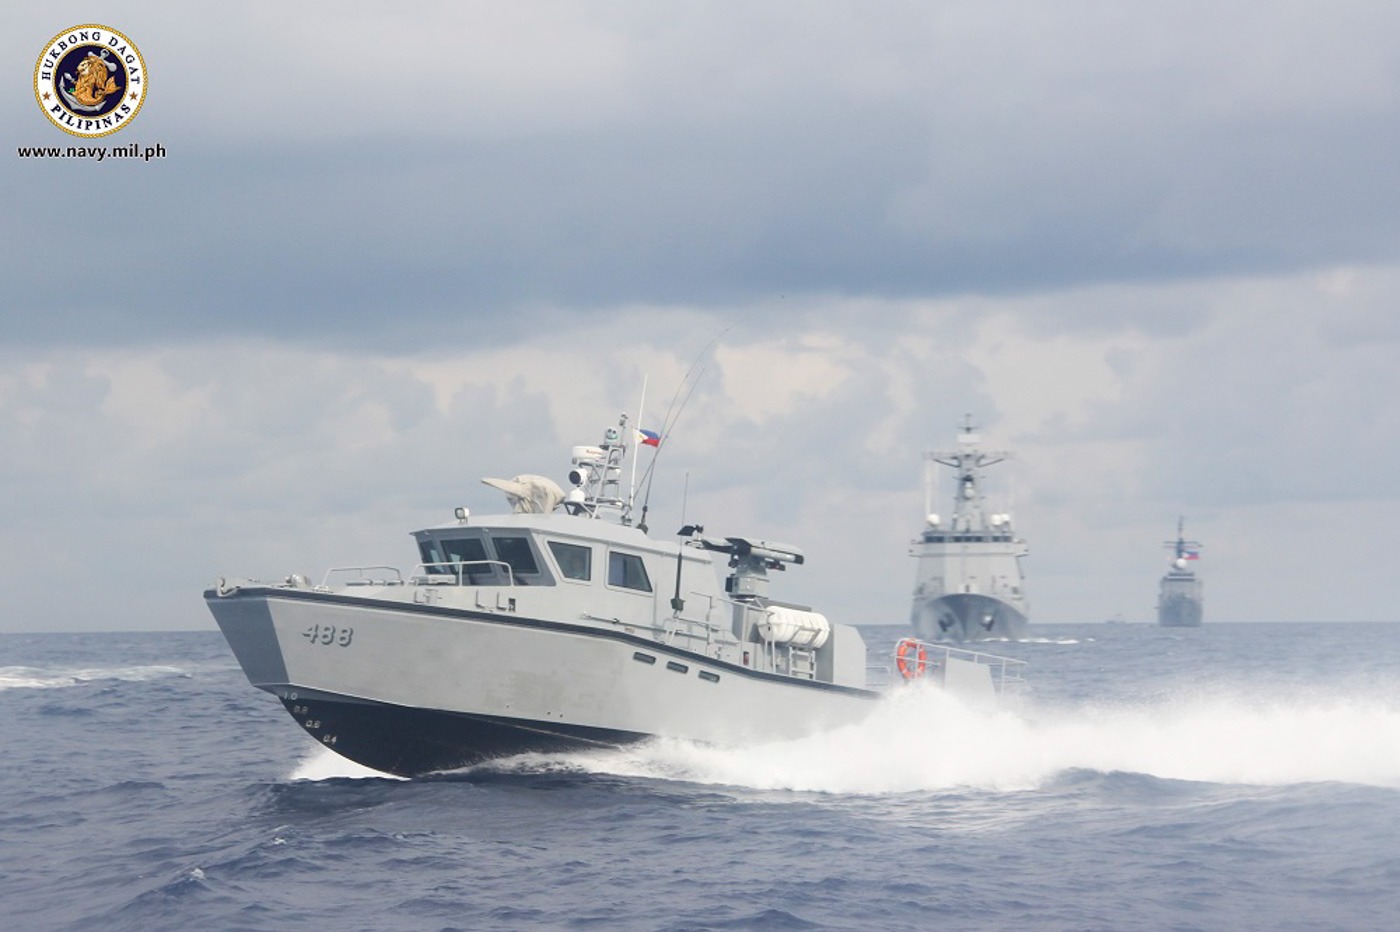 BRP JOSE RIZAL. PH Navy's newest missile capable frigate arrives in the Philippines. Photo courtesy of Philippine Navy